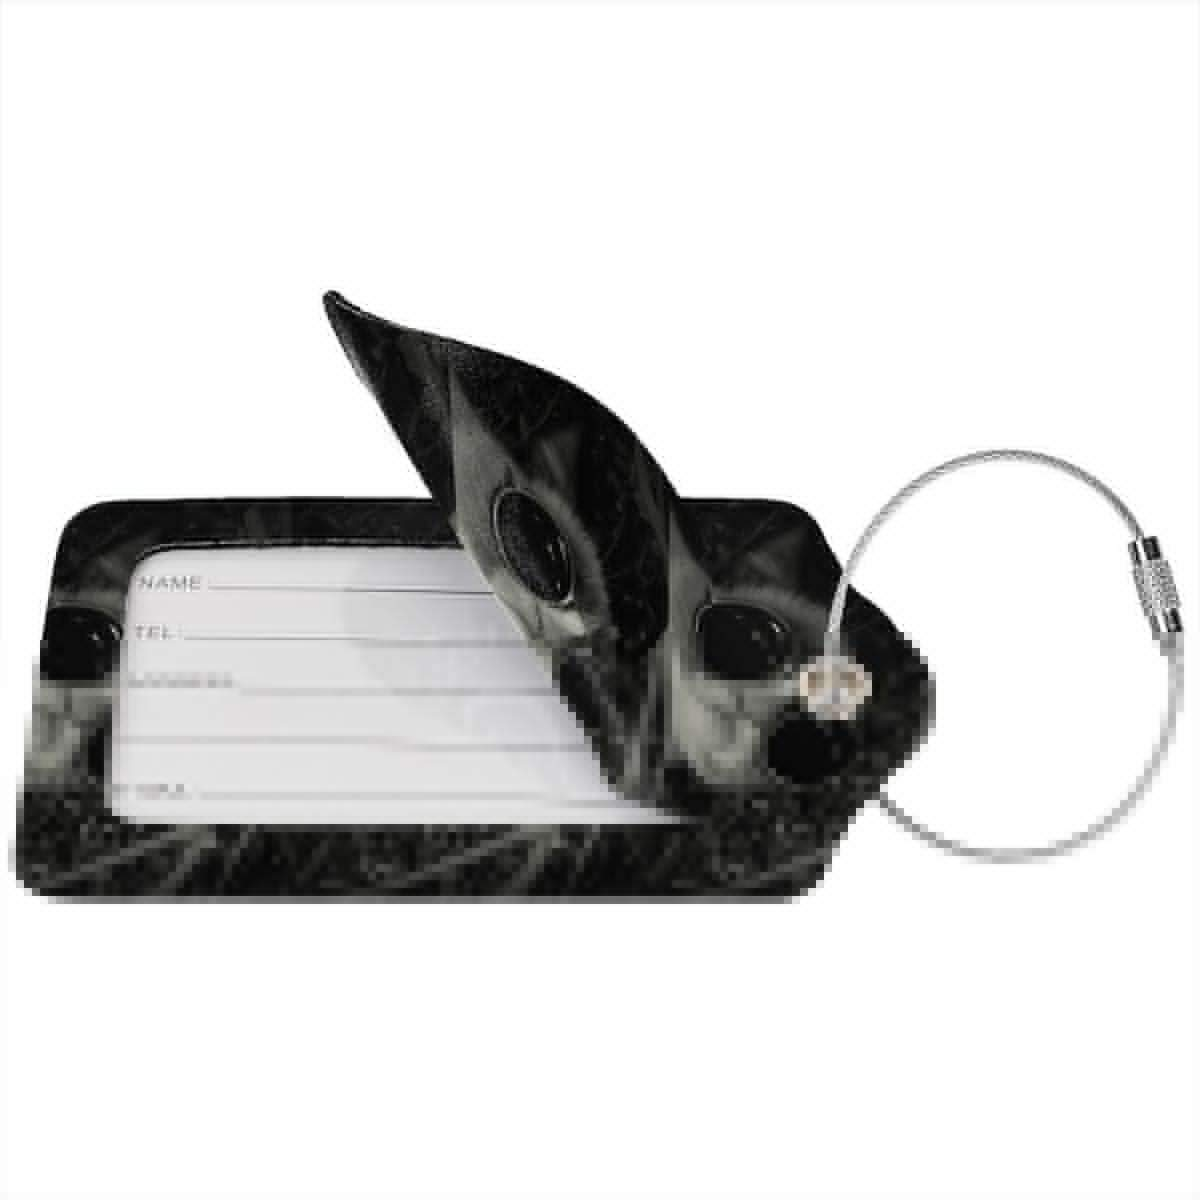 Cool Cat Leather Luggage Tags Personalized Privacy Cover With Privacy Flap